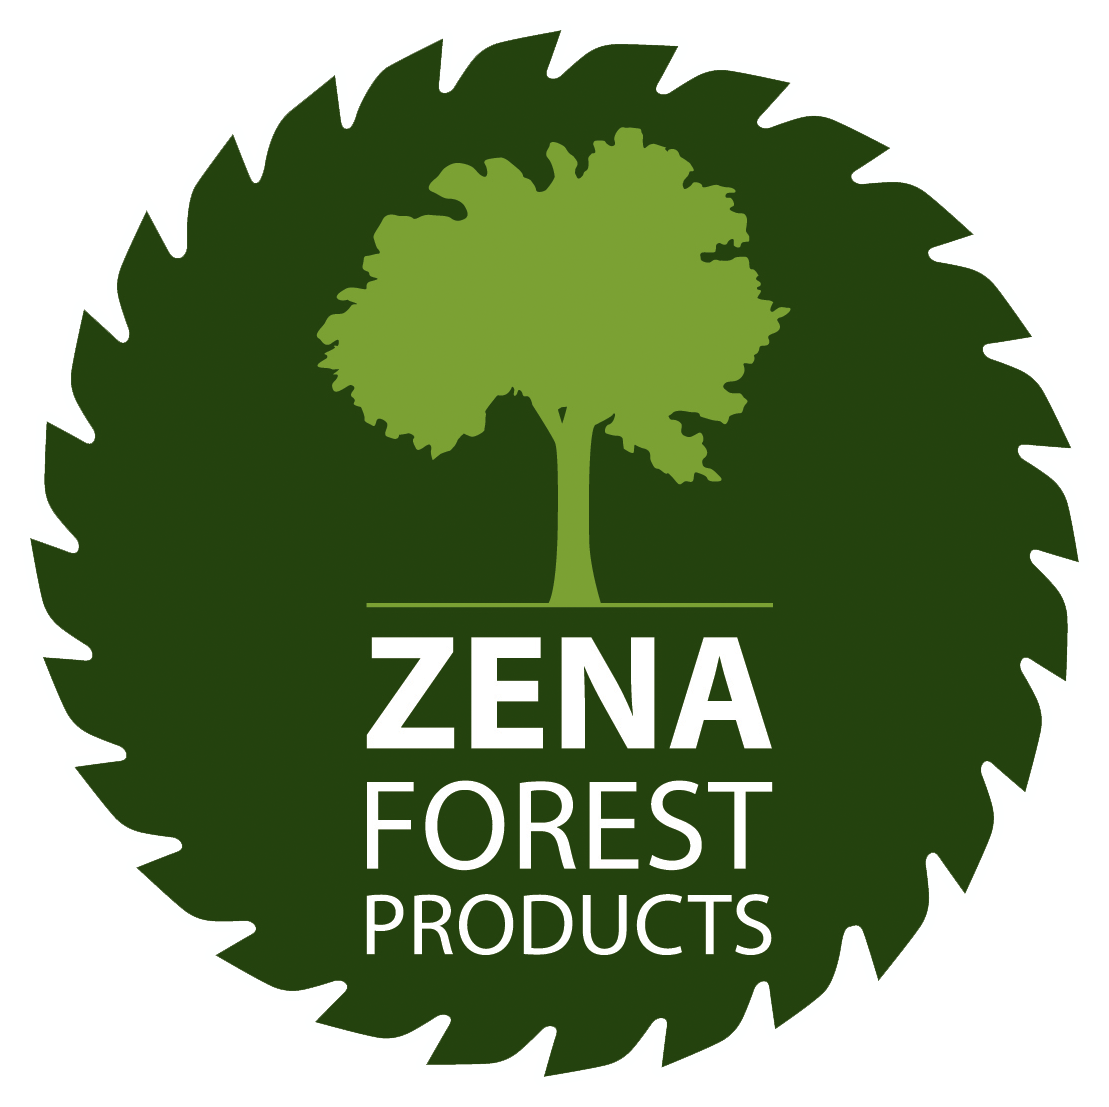 Forest floor graphic png. Zena products formatw